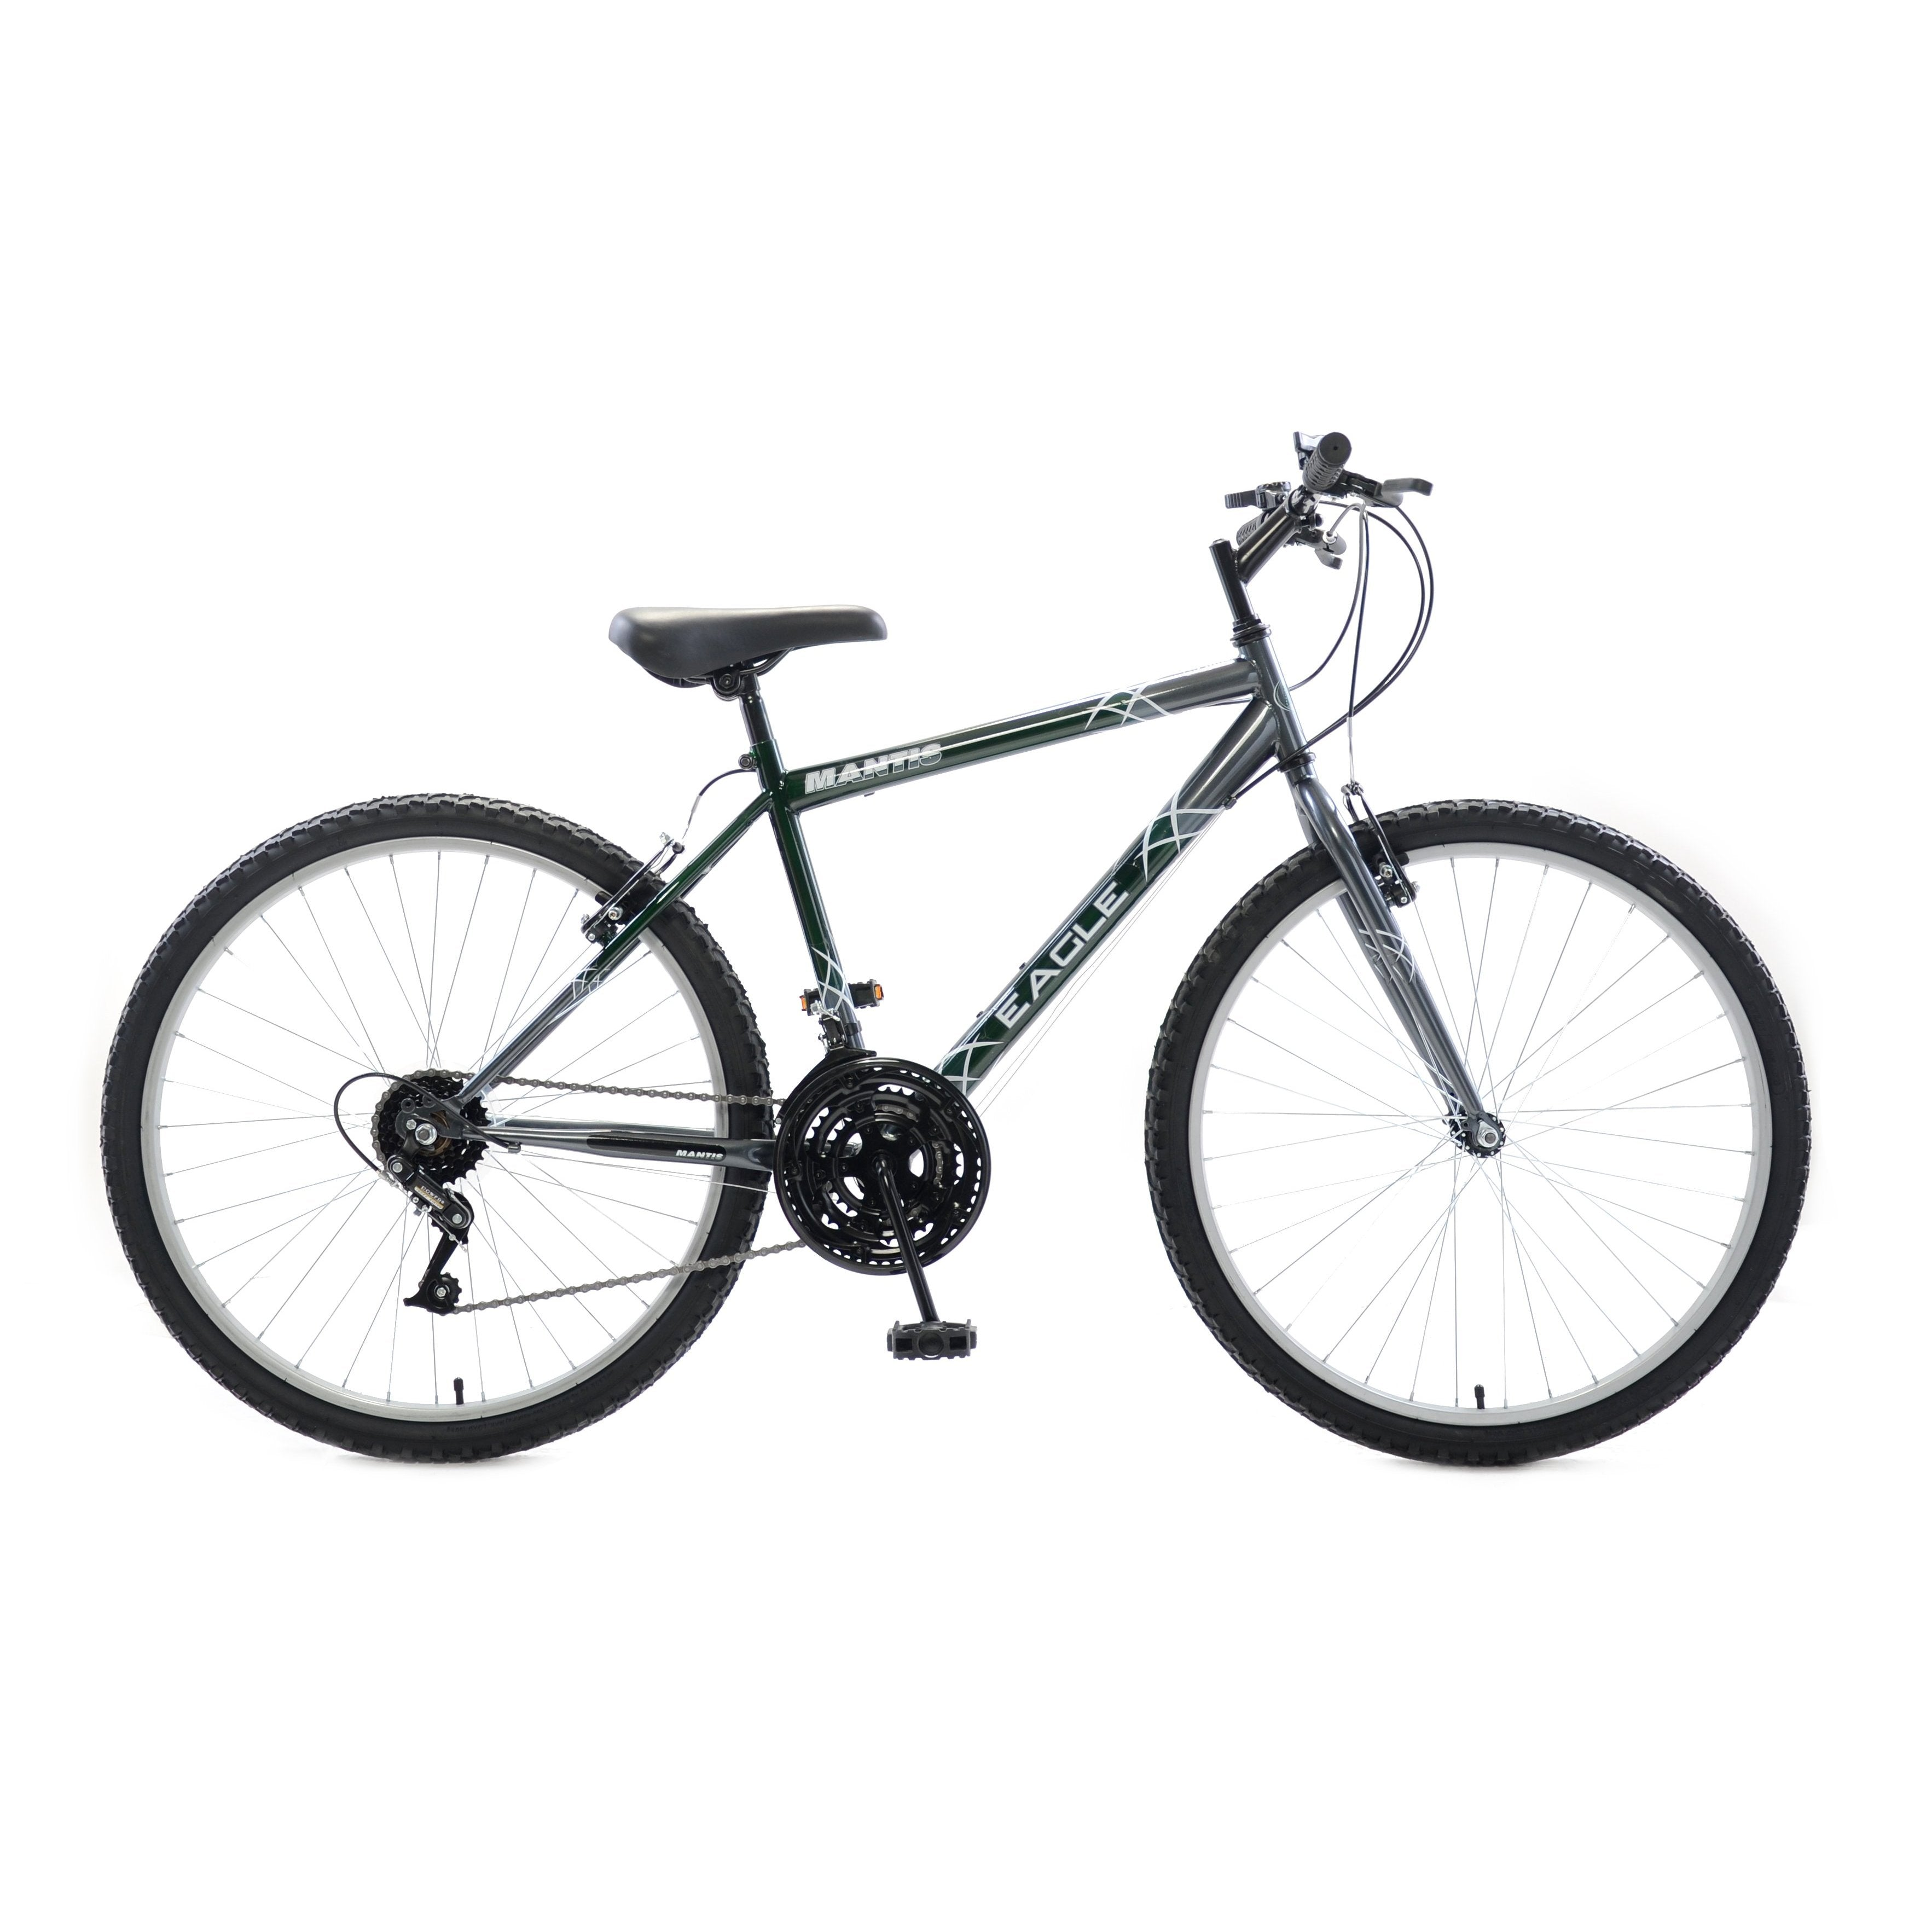 Mantis Eagle 15 Speed 26-Inch Rigid Mountain Bicycle - Bicycle Men Ridetique.com